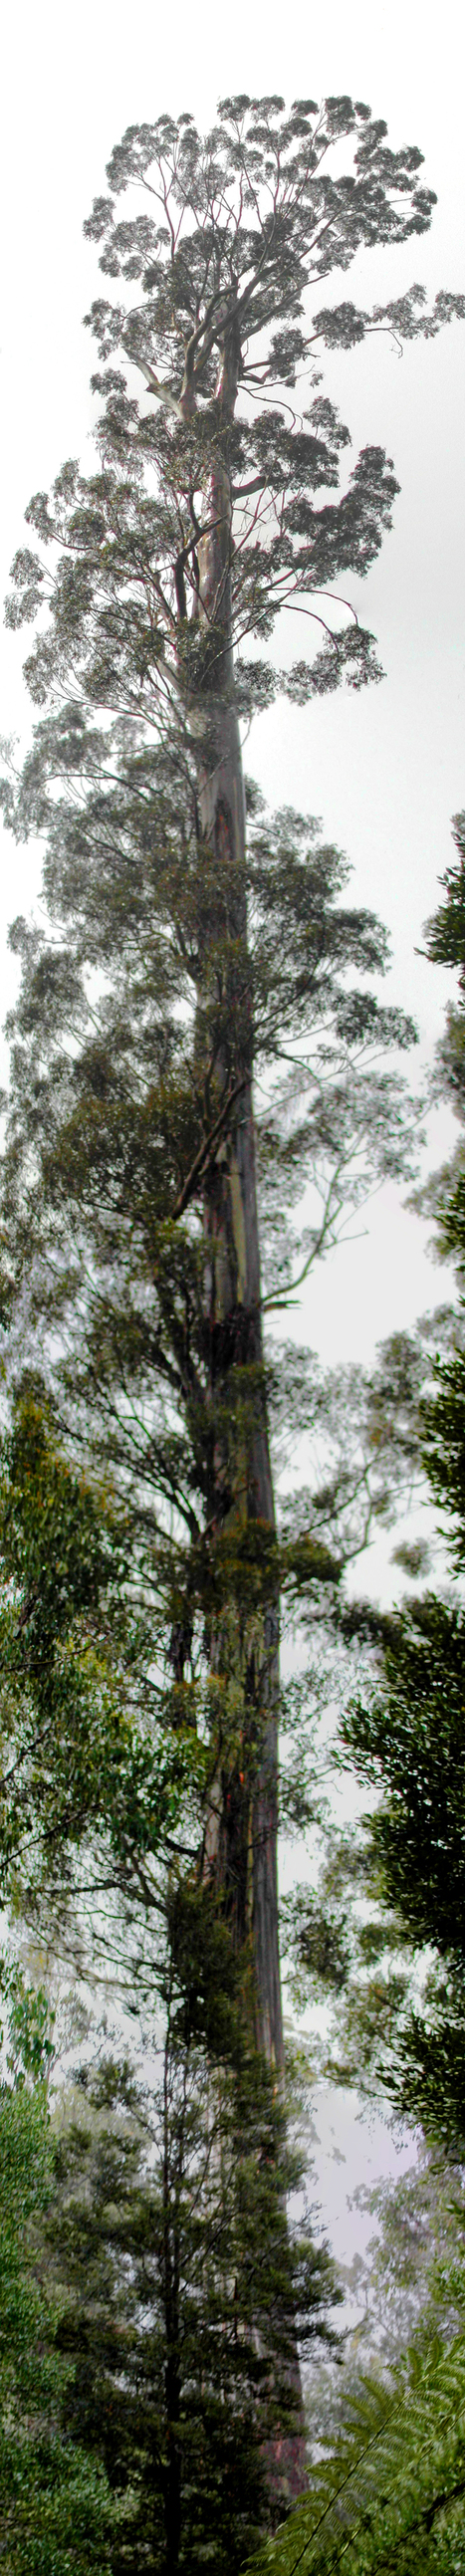 Climate change, fire may wipe out Australia's giant gum trees | Australian Plants on the Web | Scoop.it